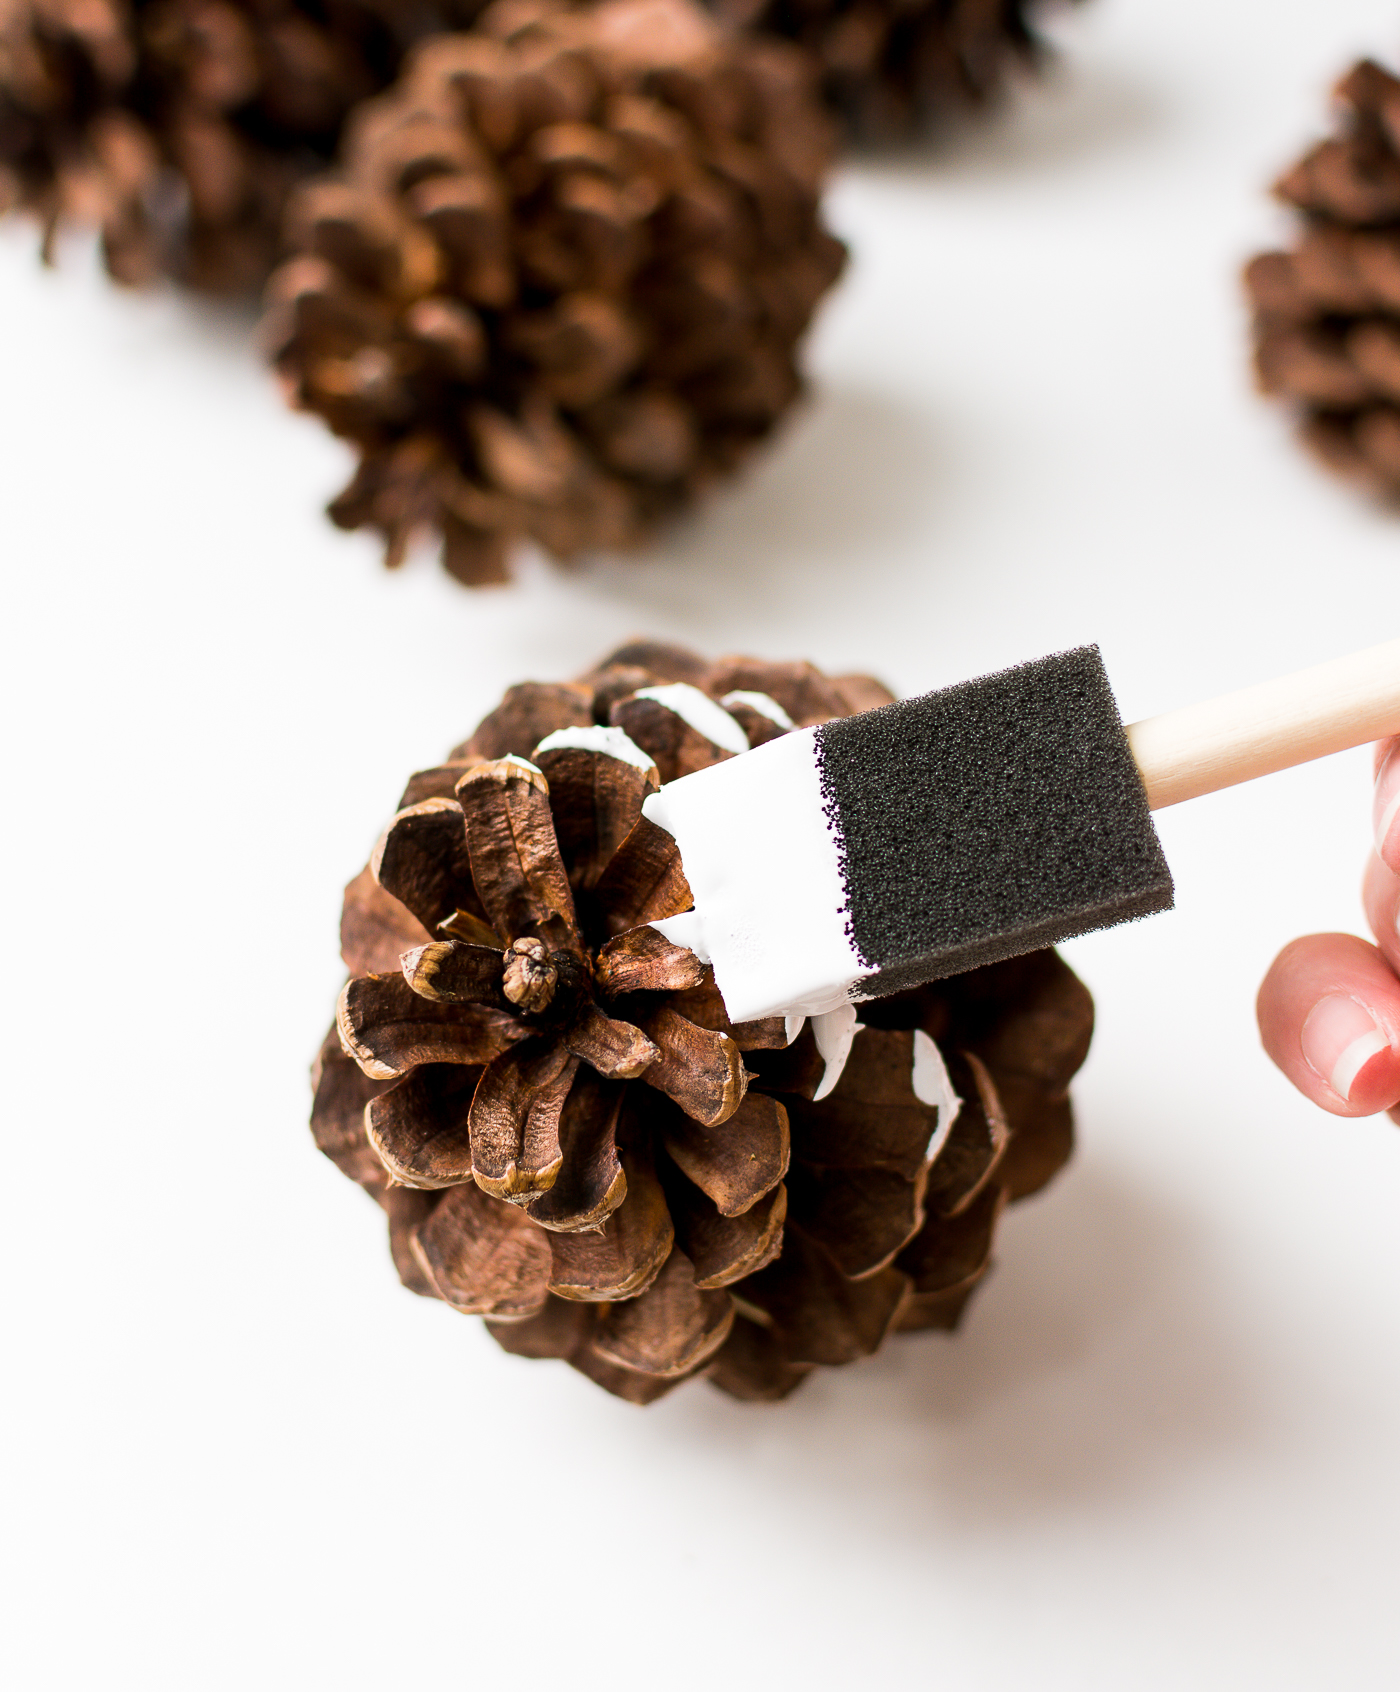 painted-pine-cones-how-to-paint-itallstartedwithpaint-com-3